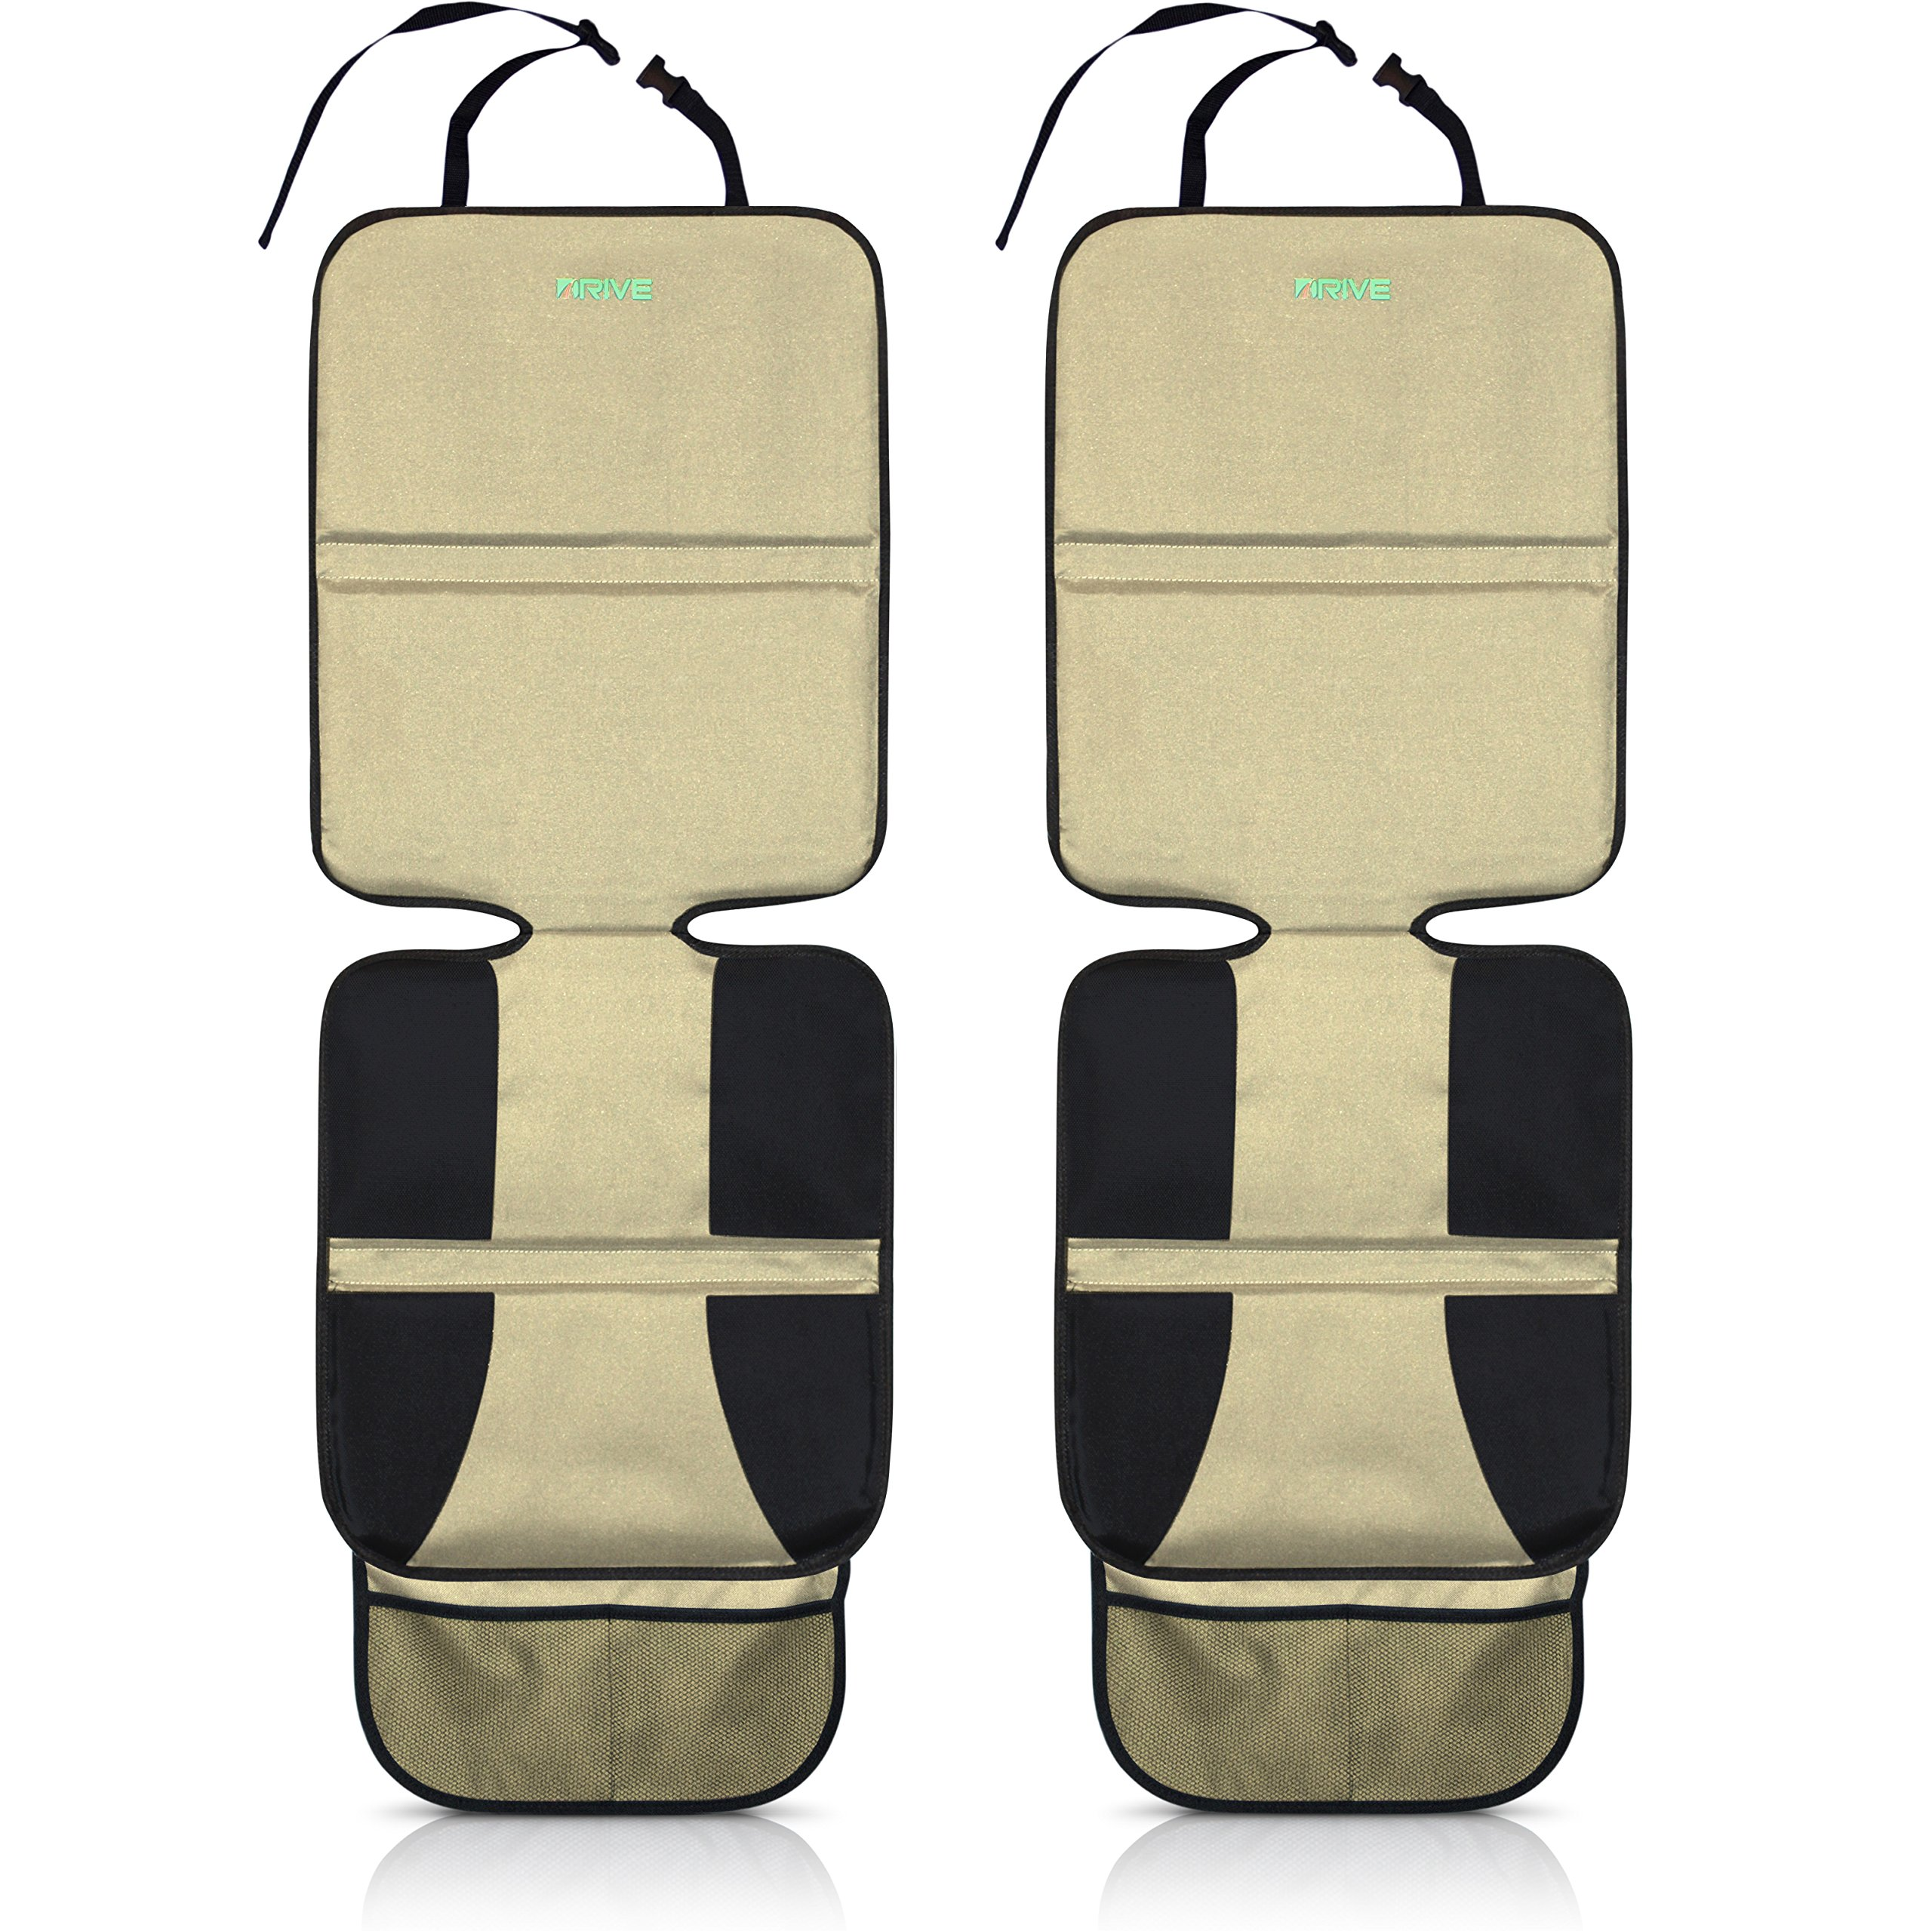 Drive Auto Products Car Seat Protector (2-Pack) by, Tan - Ultimate Neoprene Backing is Best Protection for Child & Baby Cars Seats, Dog Mat - Cover Pad Protects Automotive Vehicle Upholstery